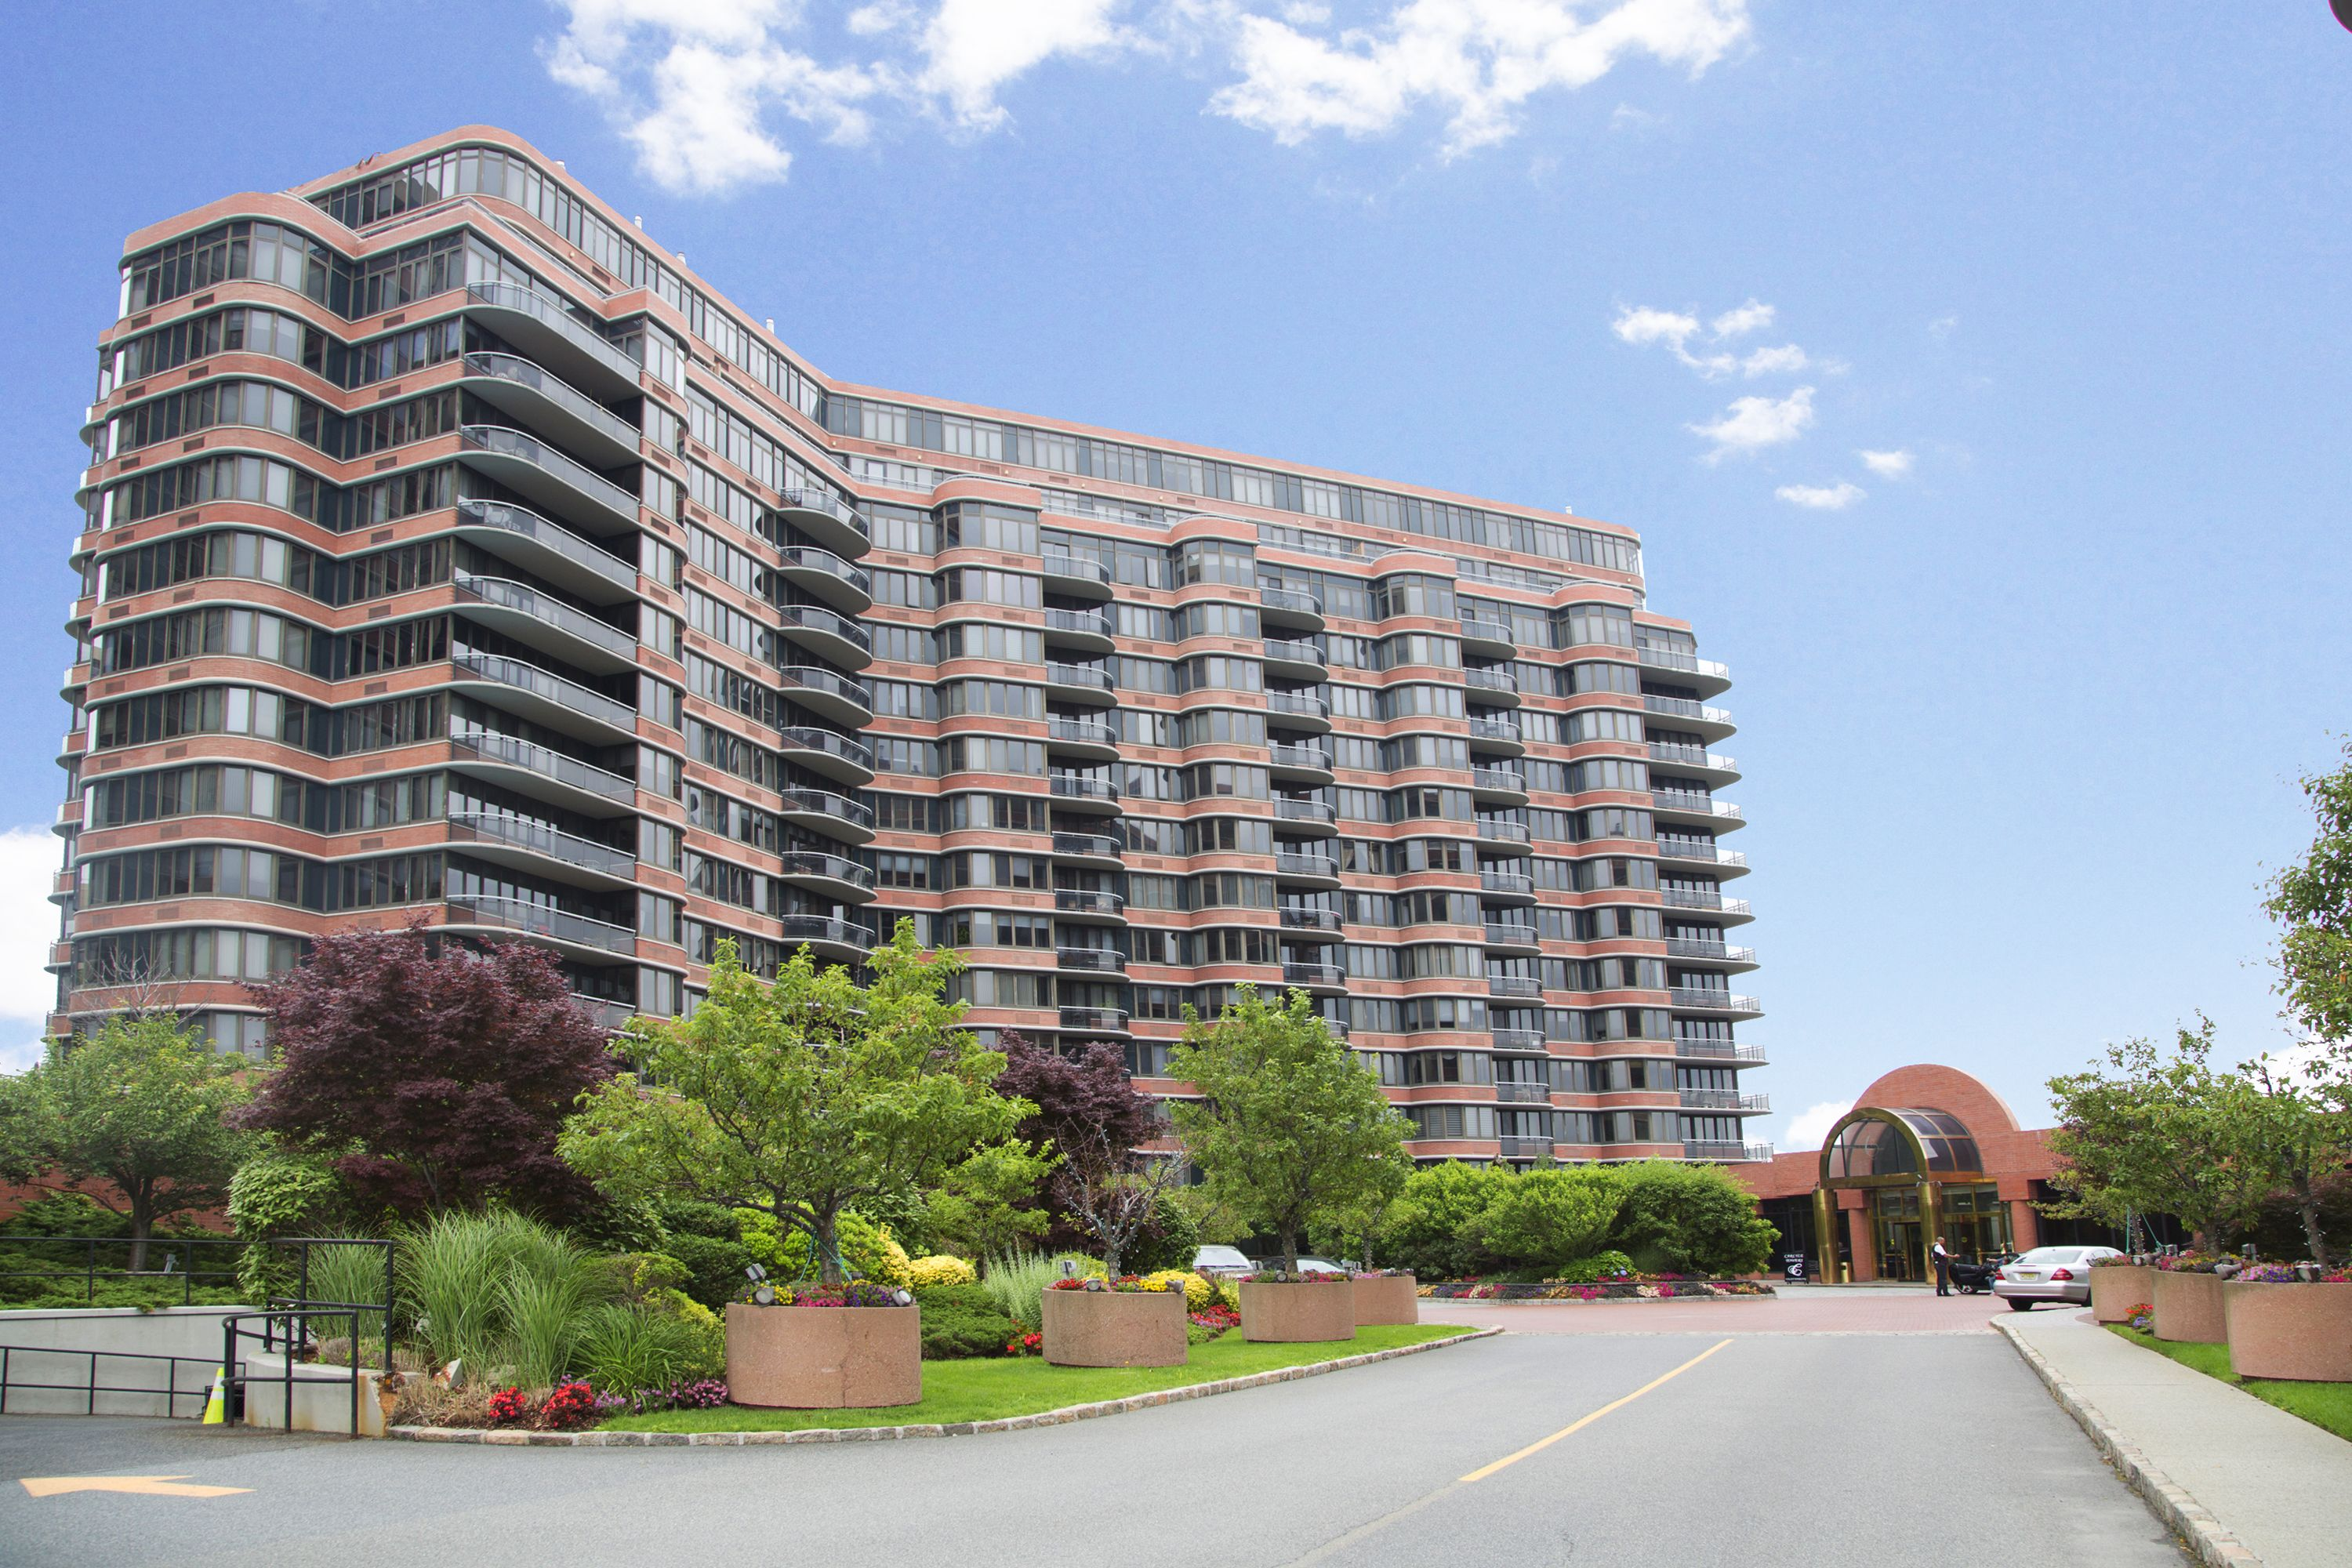 콘도미니엄 용 매매 에 Sun Drenched Condo with Hudson River Views! 100 Winston Drive N16L Cliffside Park, 뉴저지 07010 미국